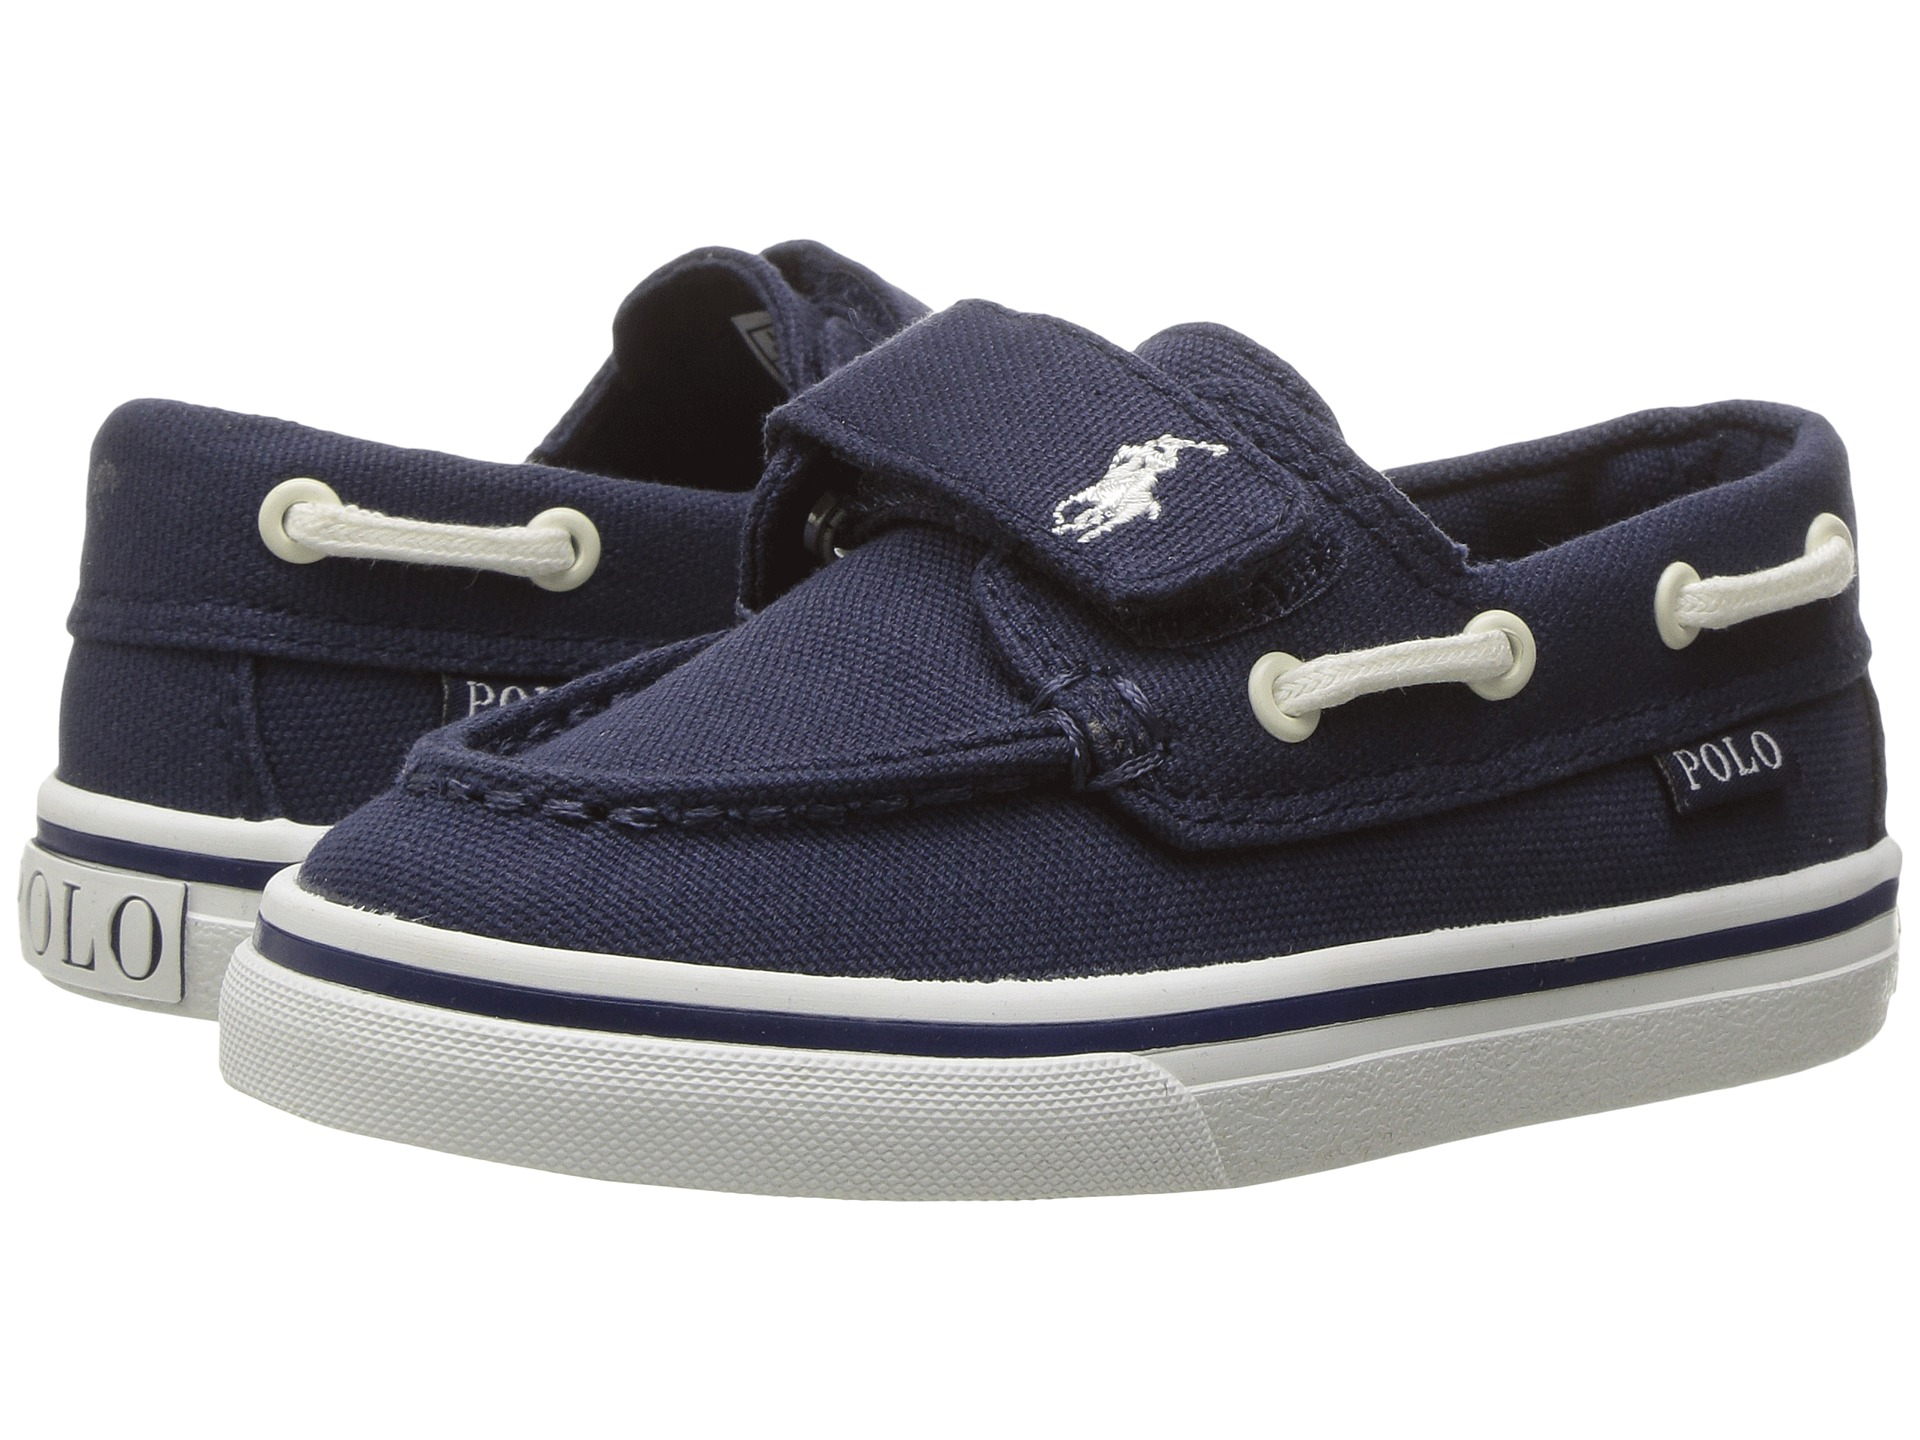 Polo ralph lauren kids batten ez toddler at for Ralph lauren kids